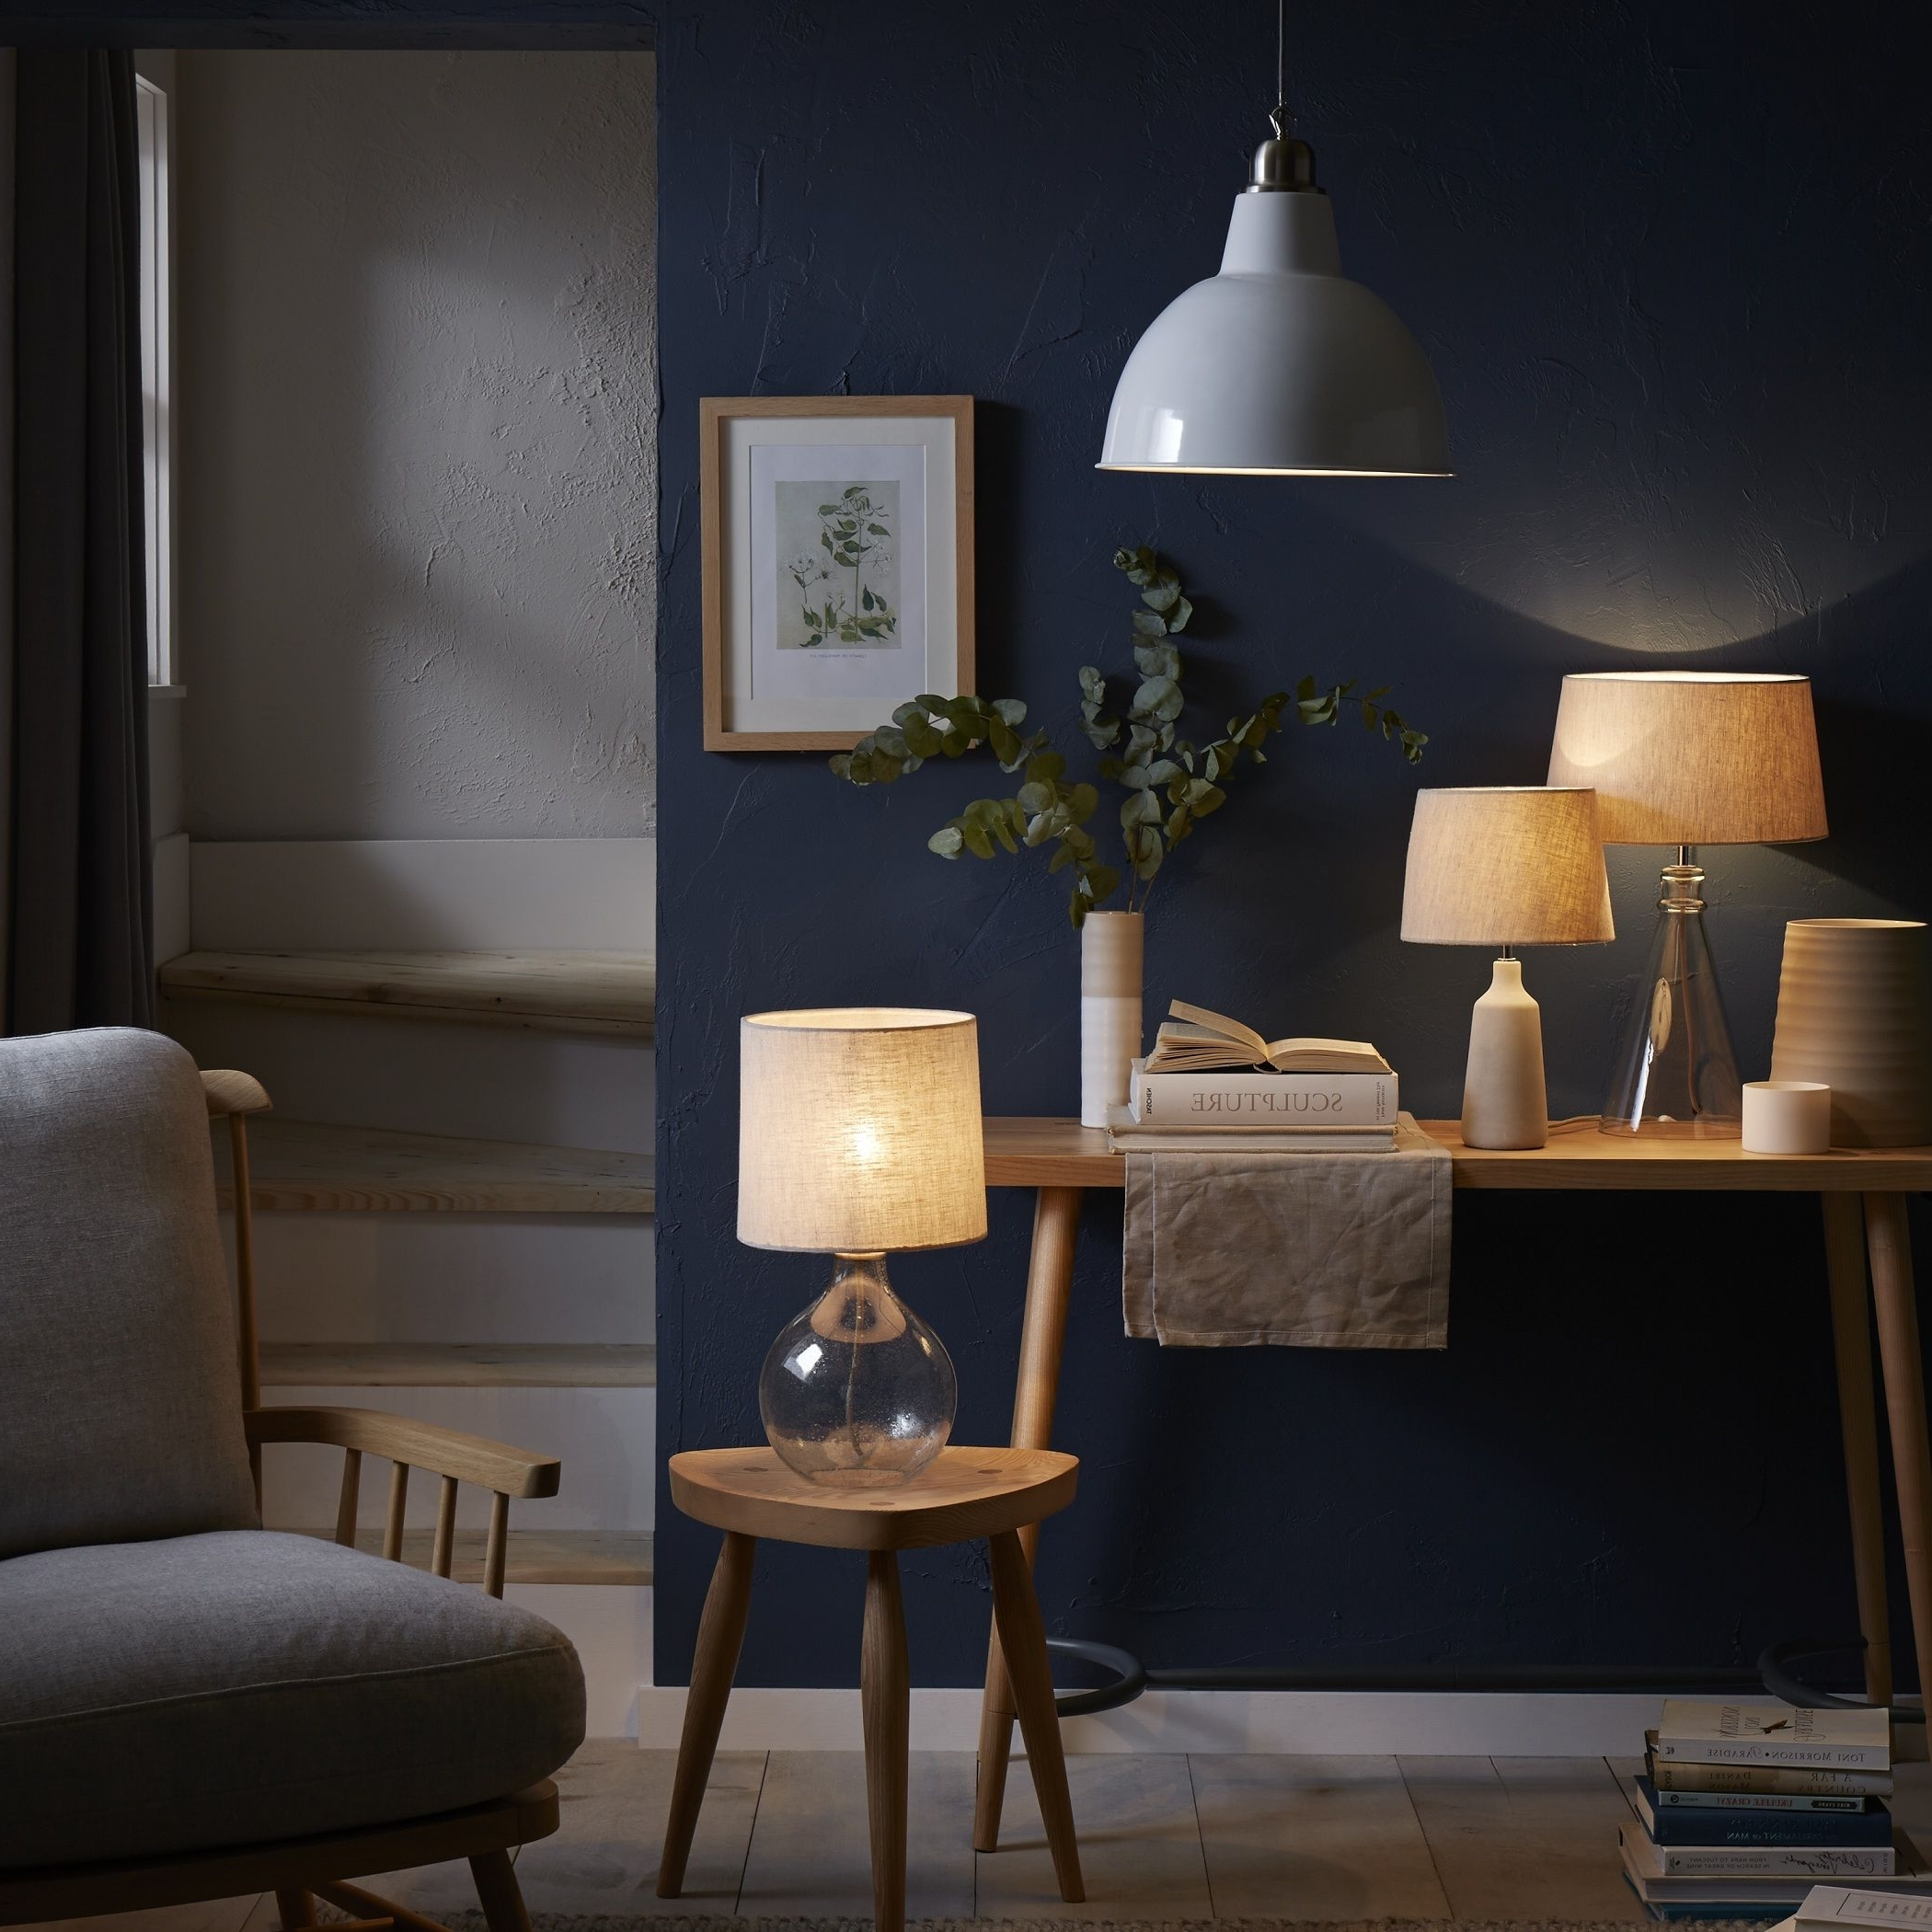 John Lewis Have A Number Of Natural Wood And Glass Lighting Designs Within Latest John Lewis Table Lamps For Living Room (View 6 of 20)